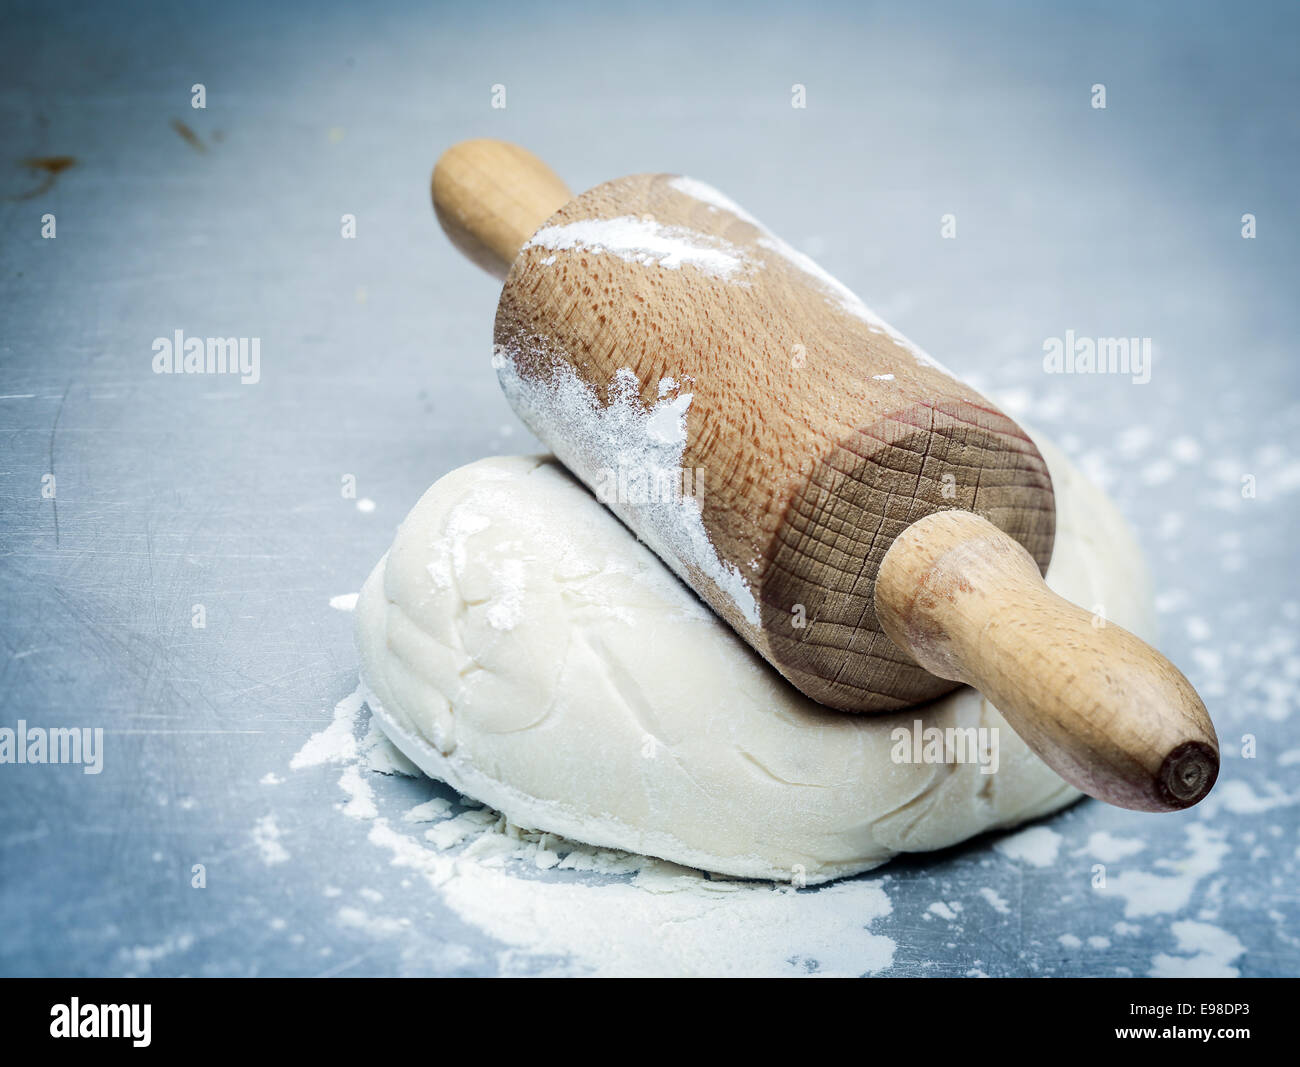 Mound of dough that has been allowed top rise topped with an old-fashioned wooden rolling pin ready to be flattened - Stock Image